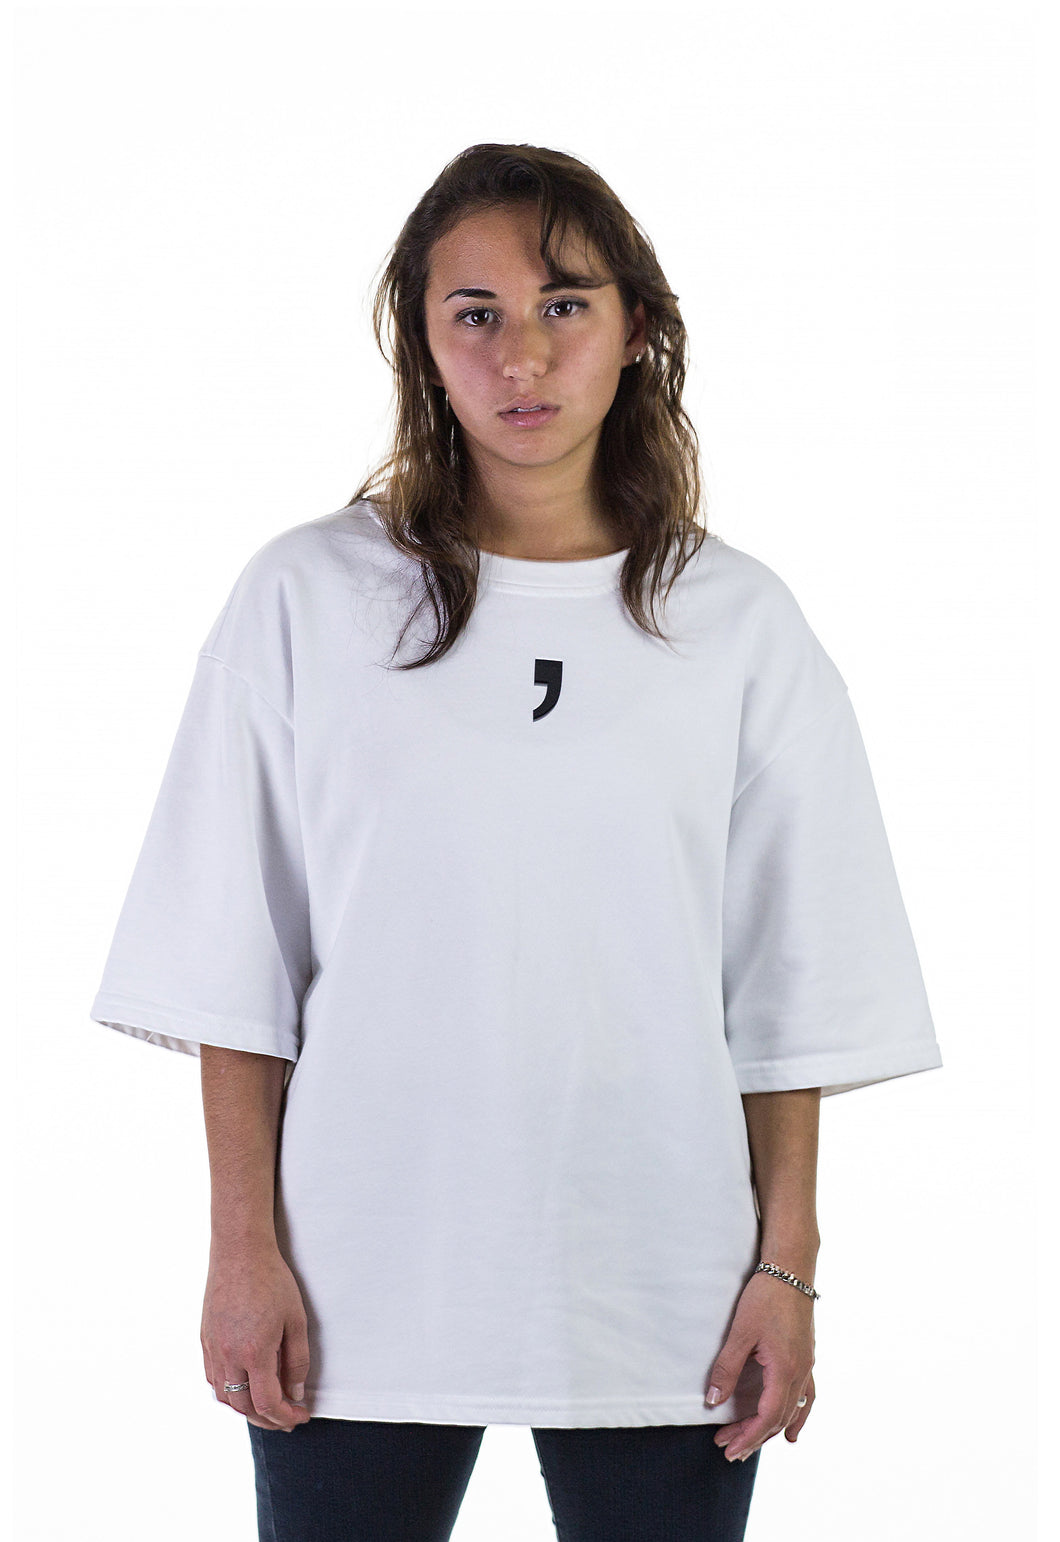 T-shirt on Woman White